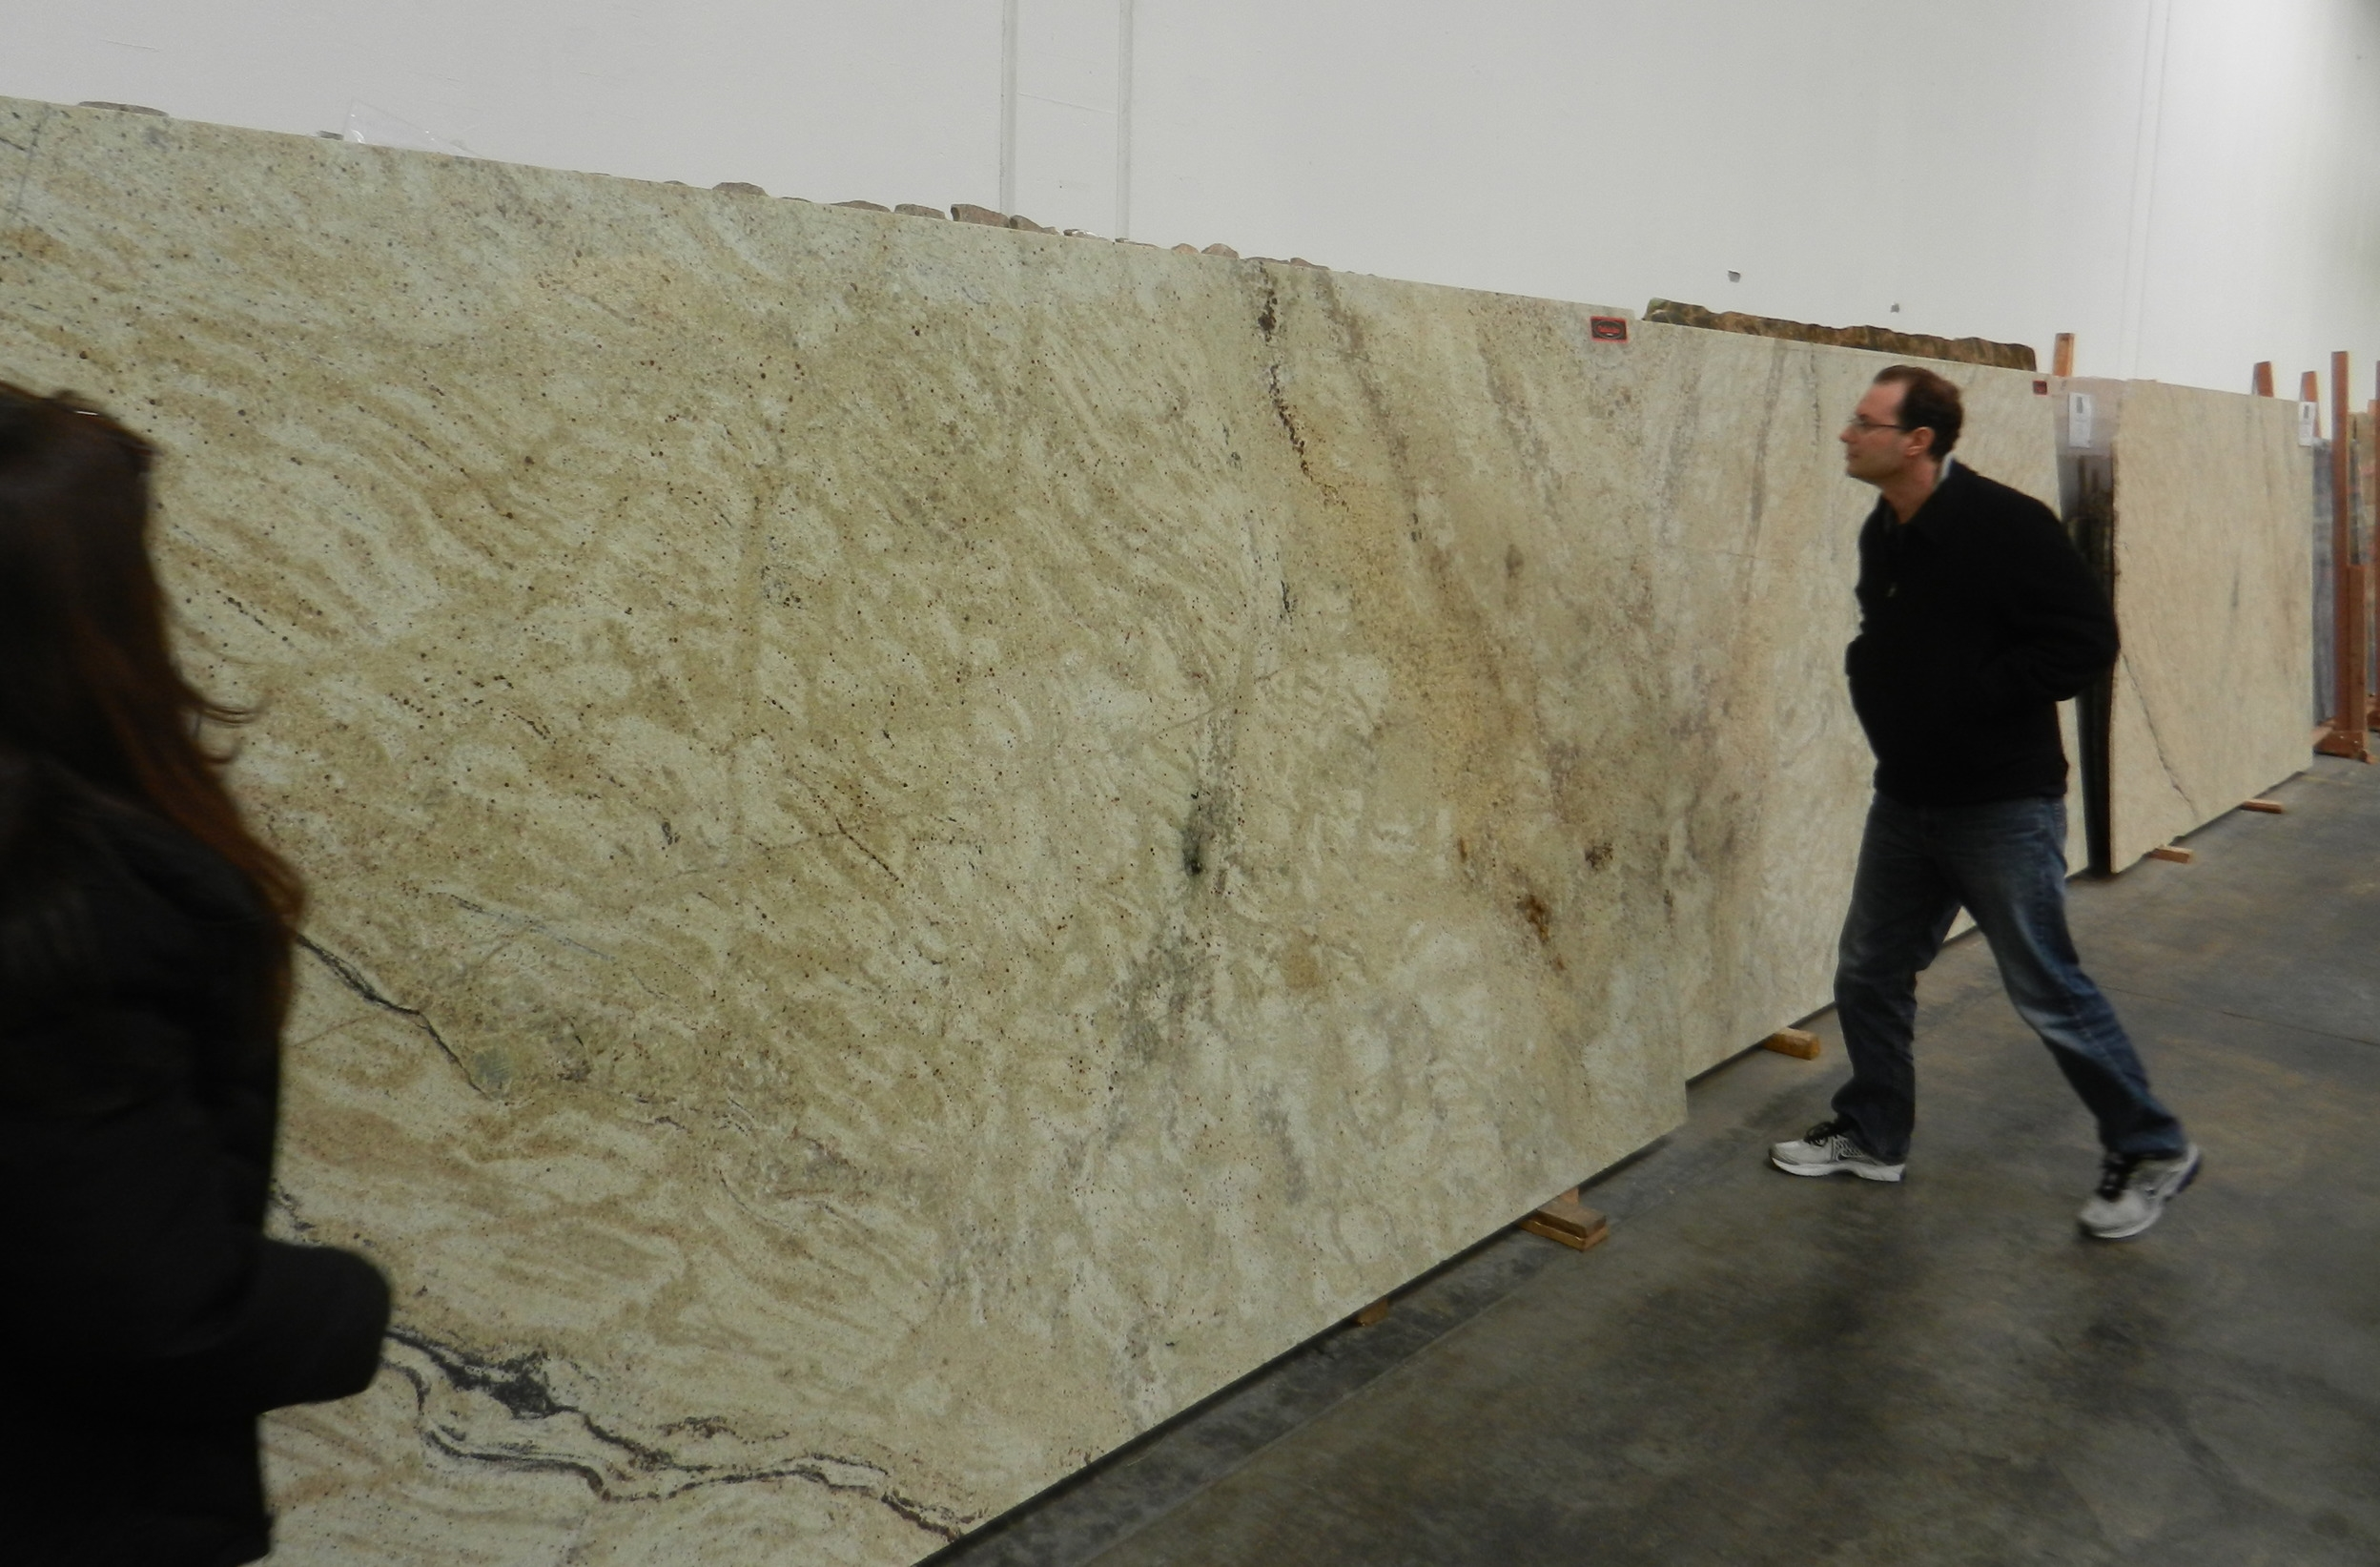 Justin selecting slabs of stone